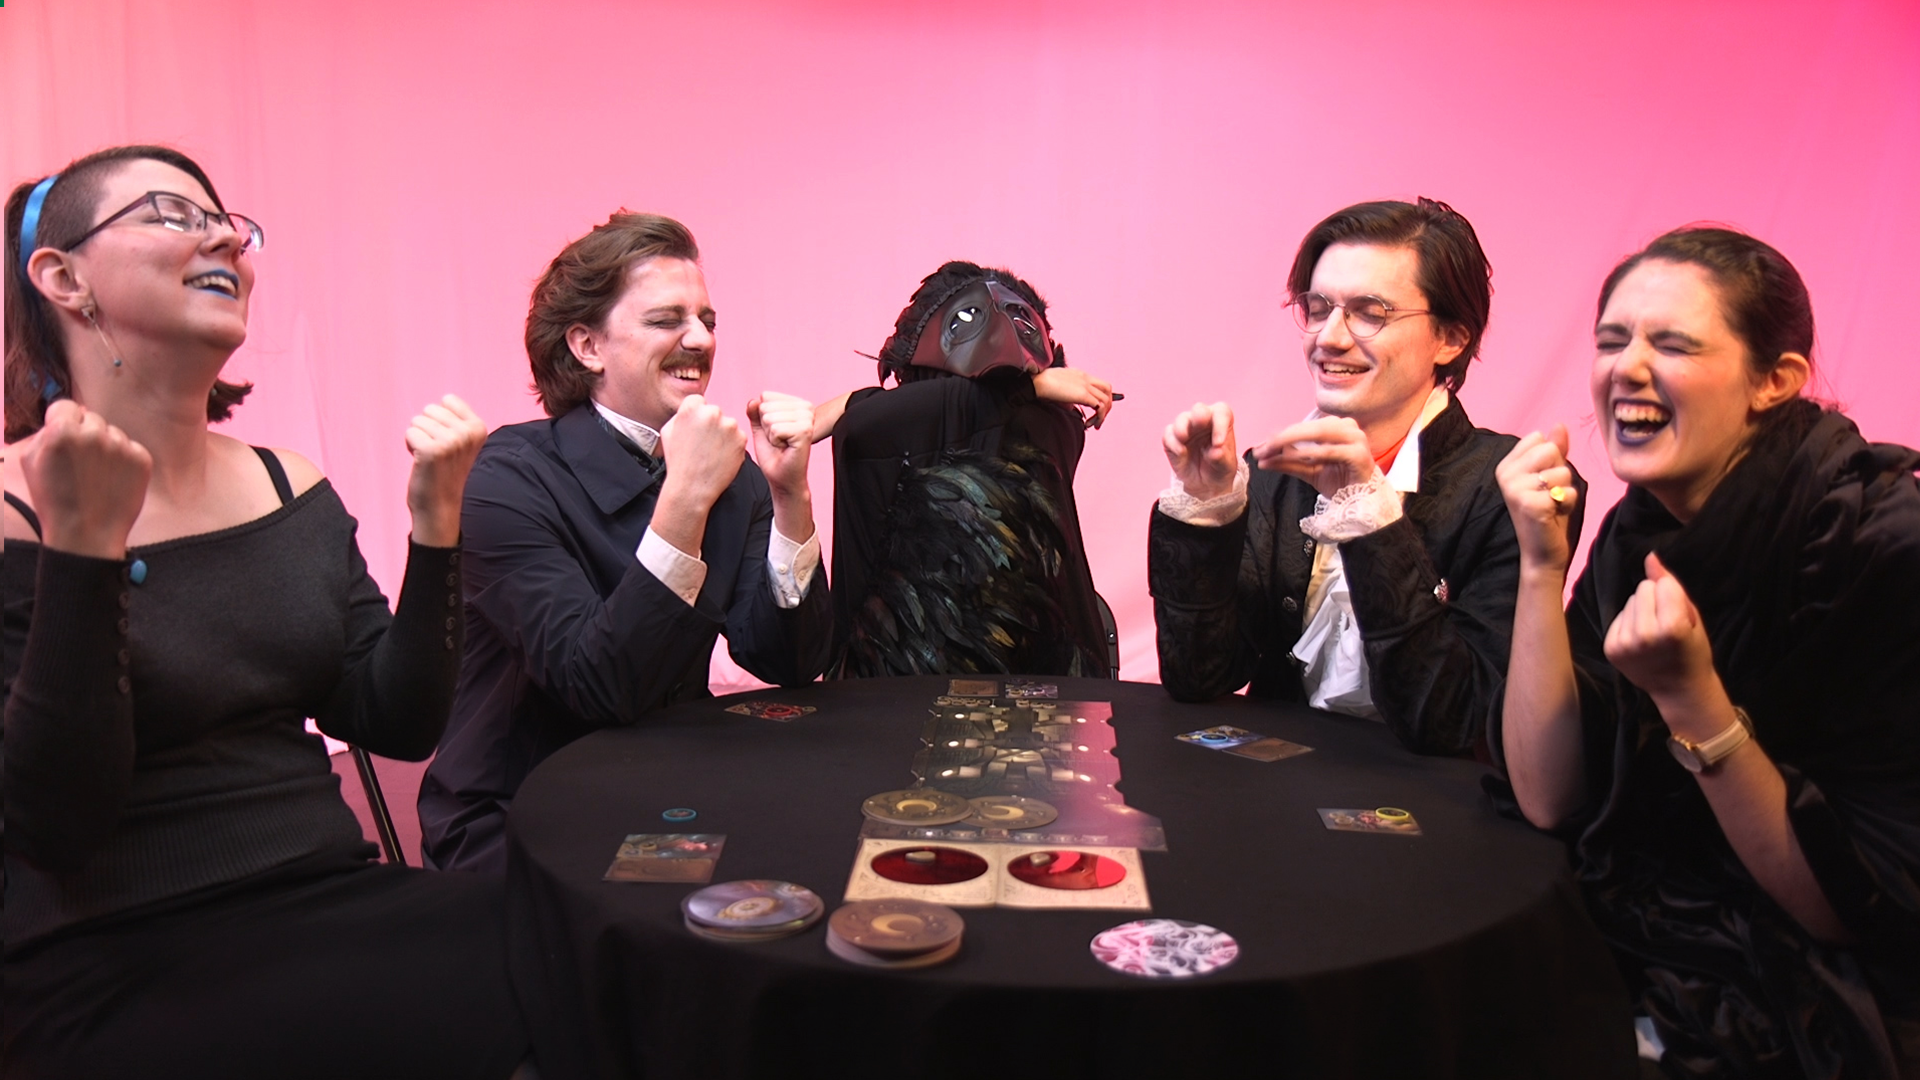 A group of people sitting around a board game with their eyes closed, hands held up, and laughing boisterously